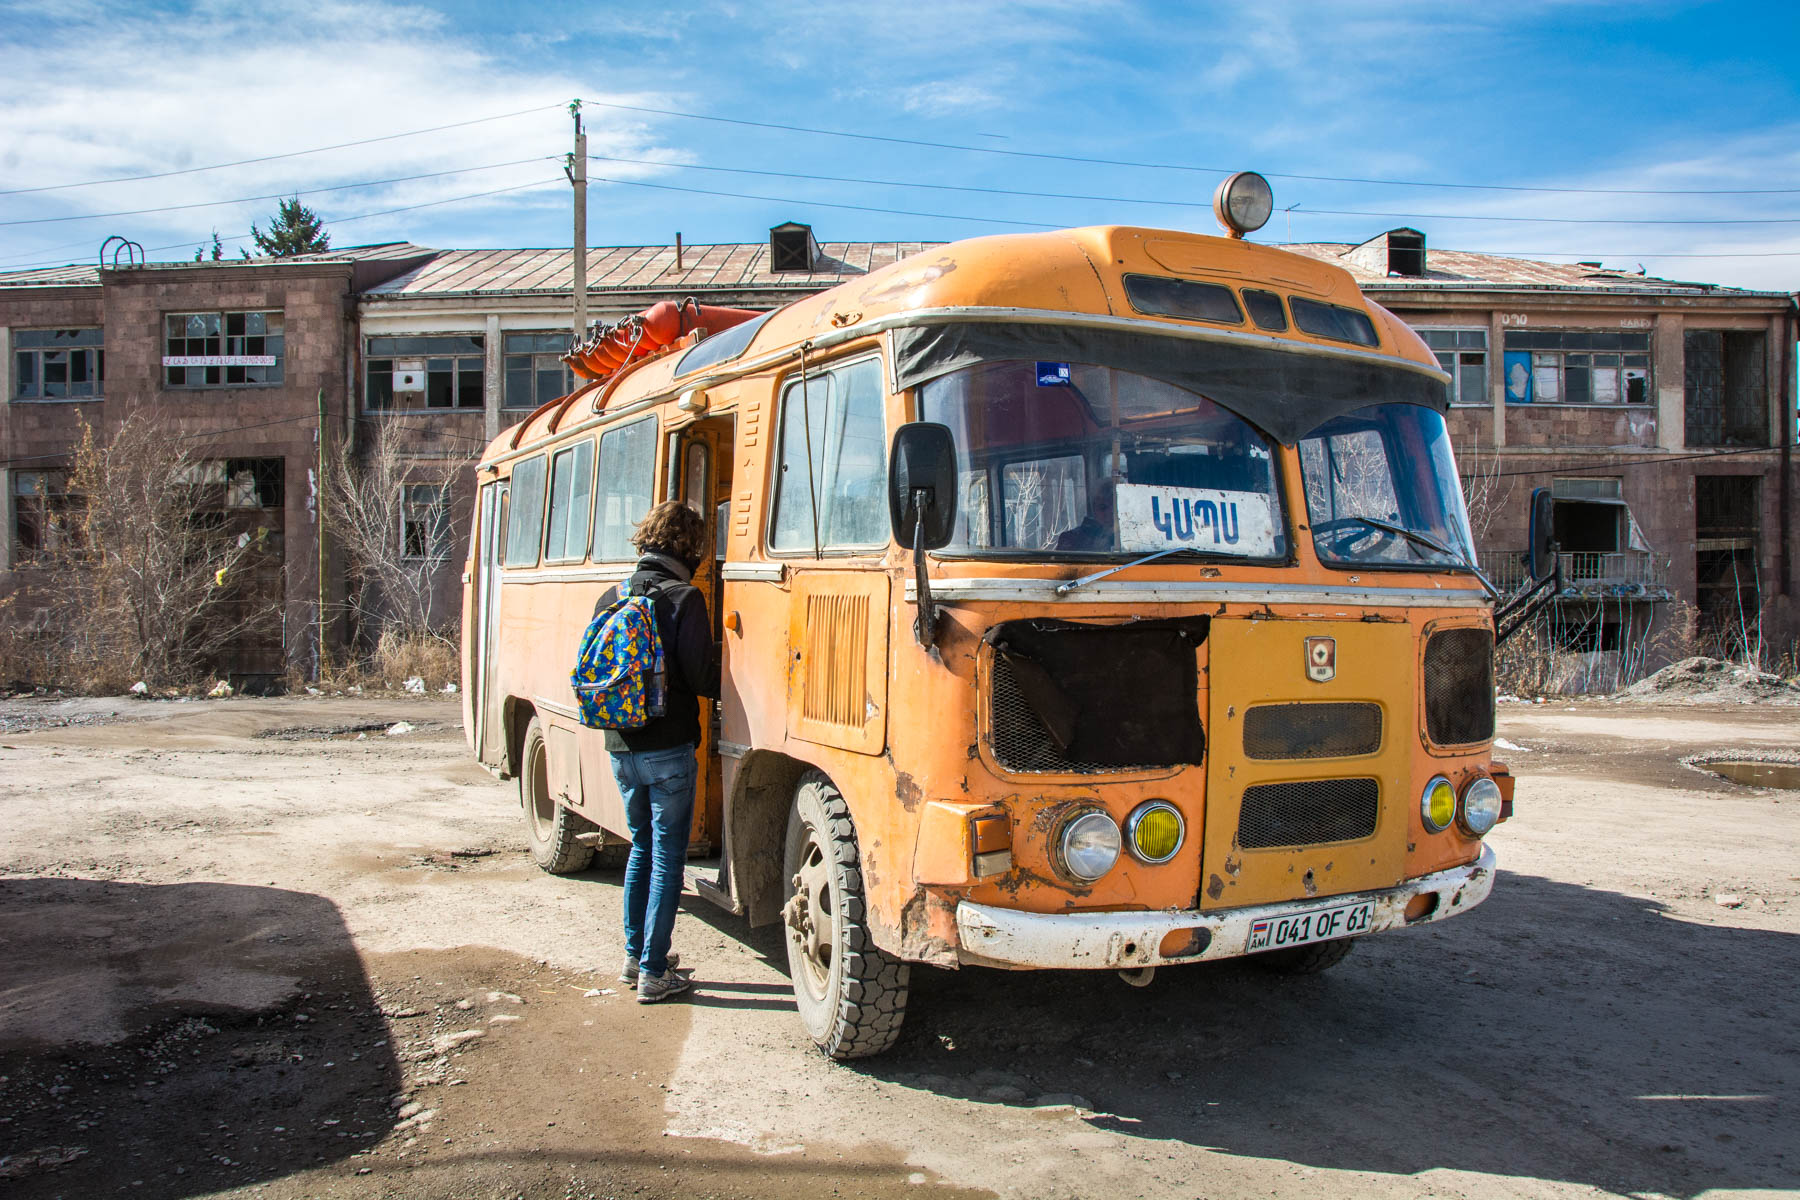 Most adventurous forms of transportation while traveling - Local bus - Lost With Purpose